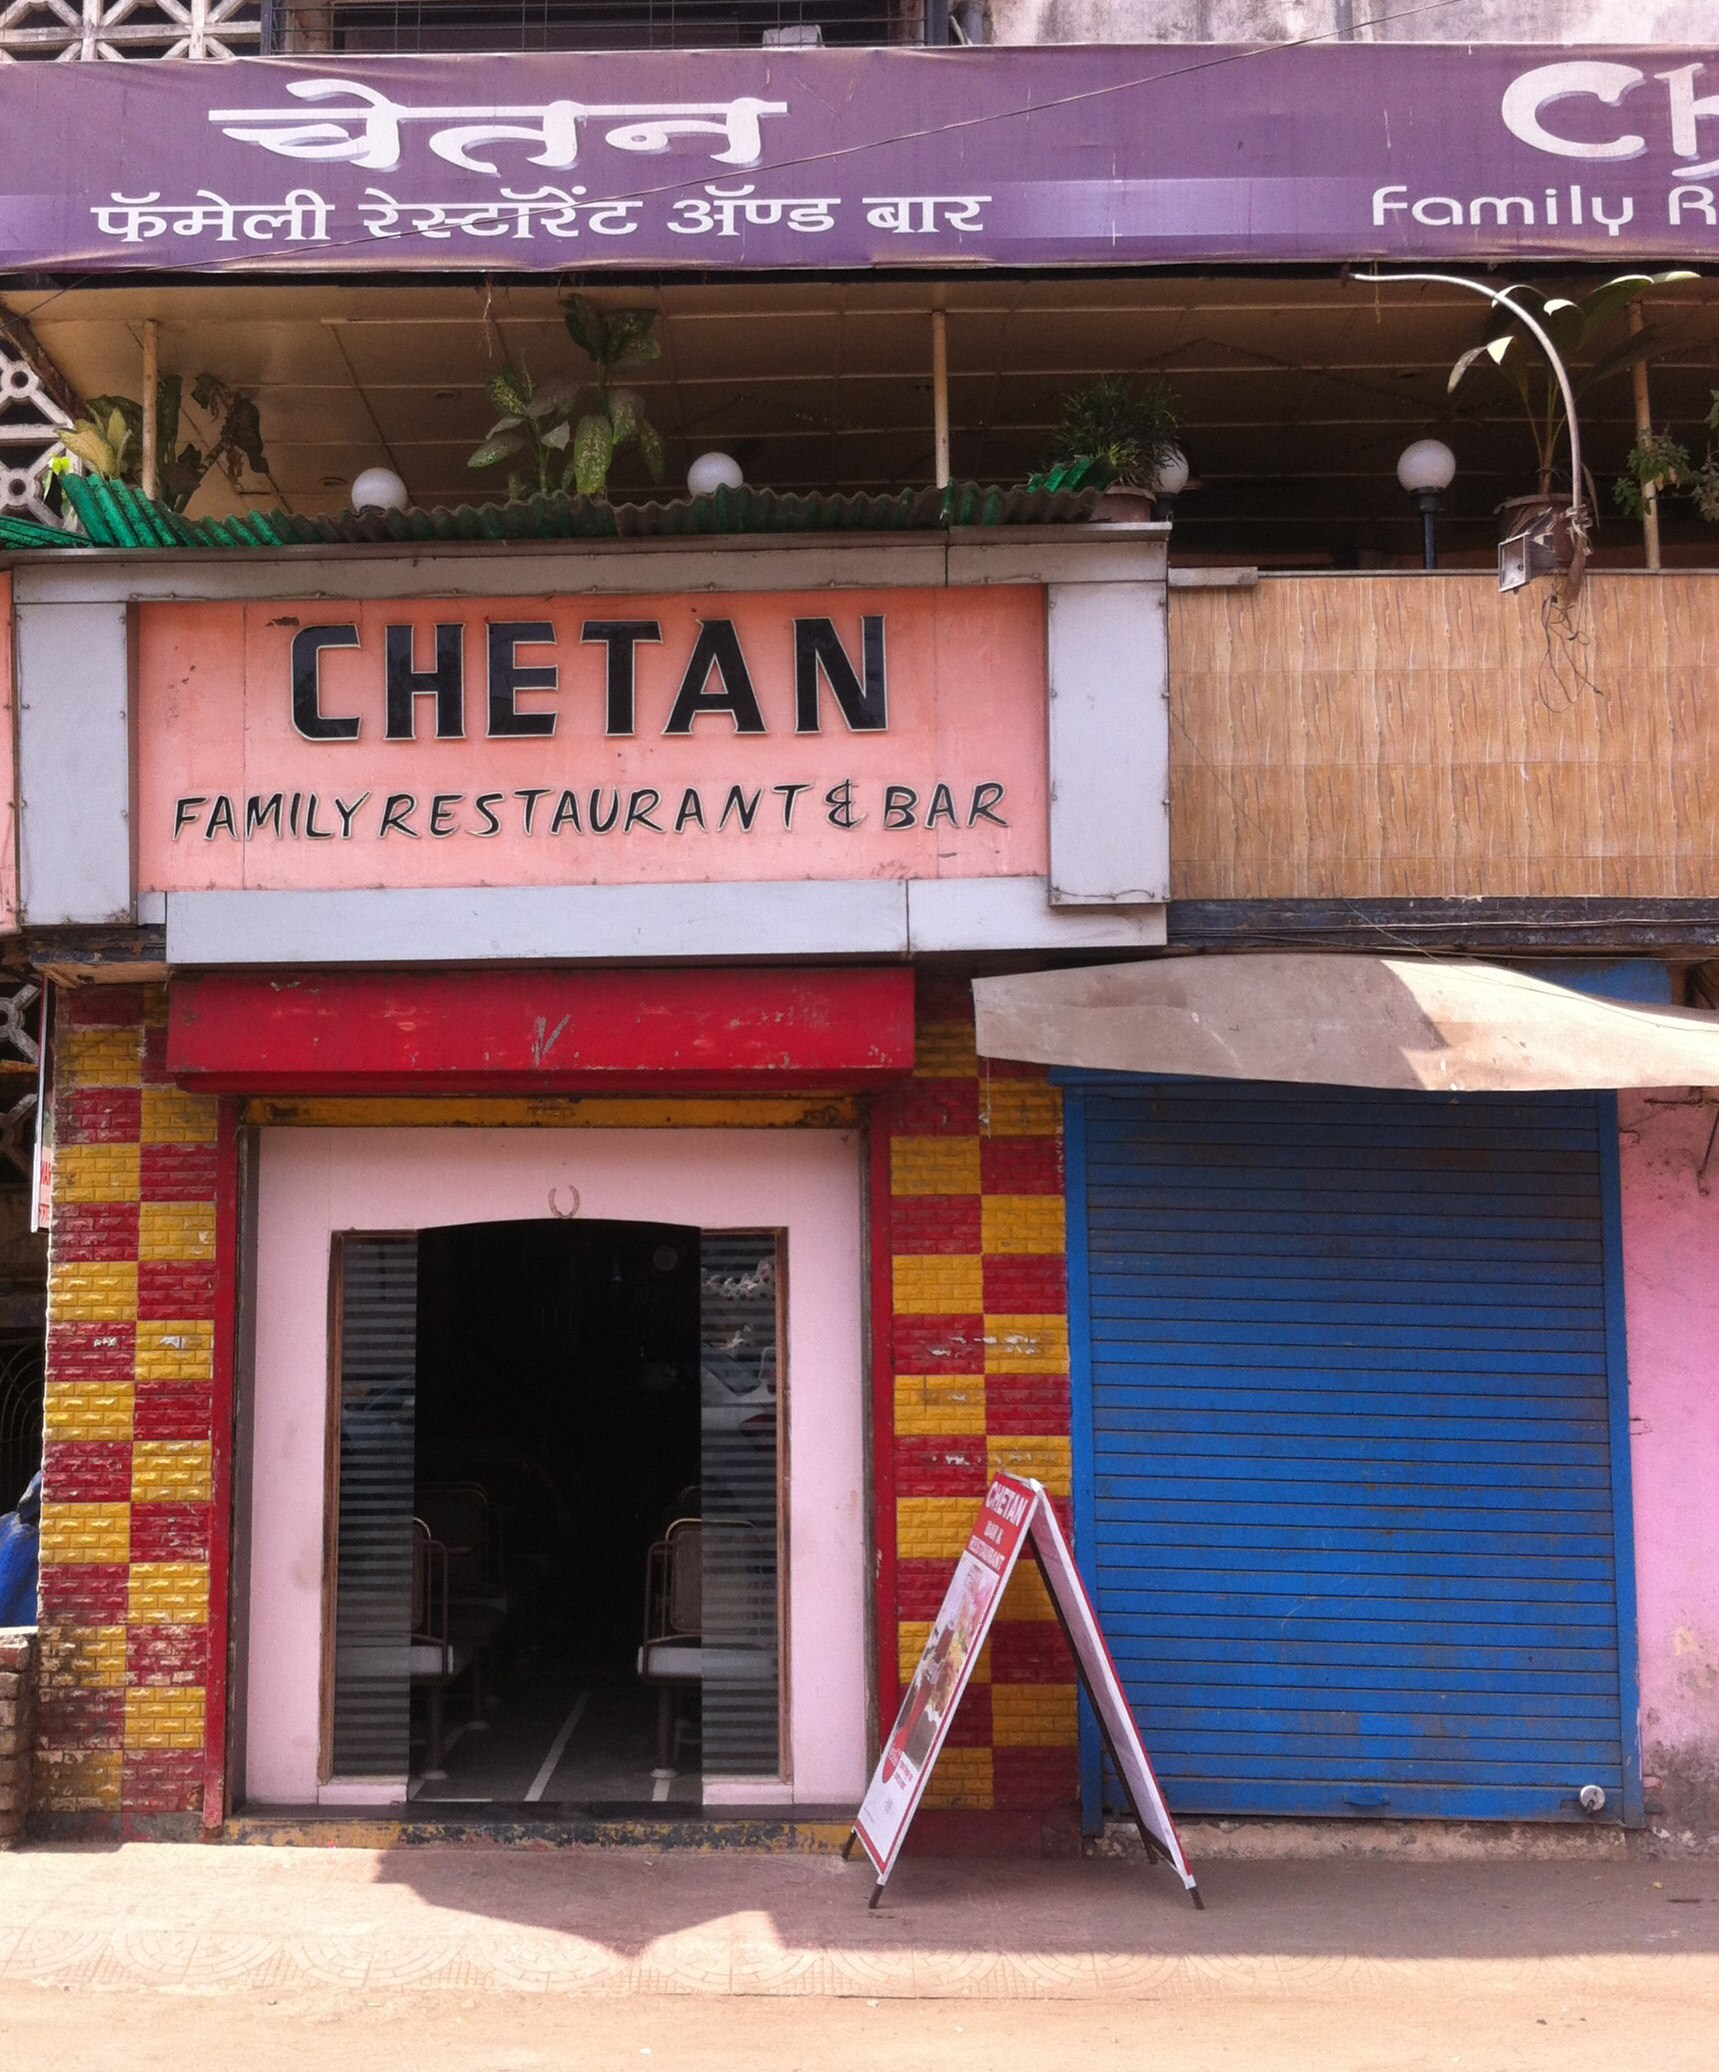 Chetan Family Restaurant & Bar - Kalwa - Thane Image